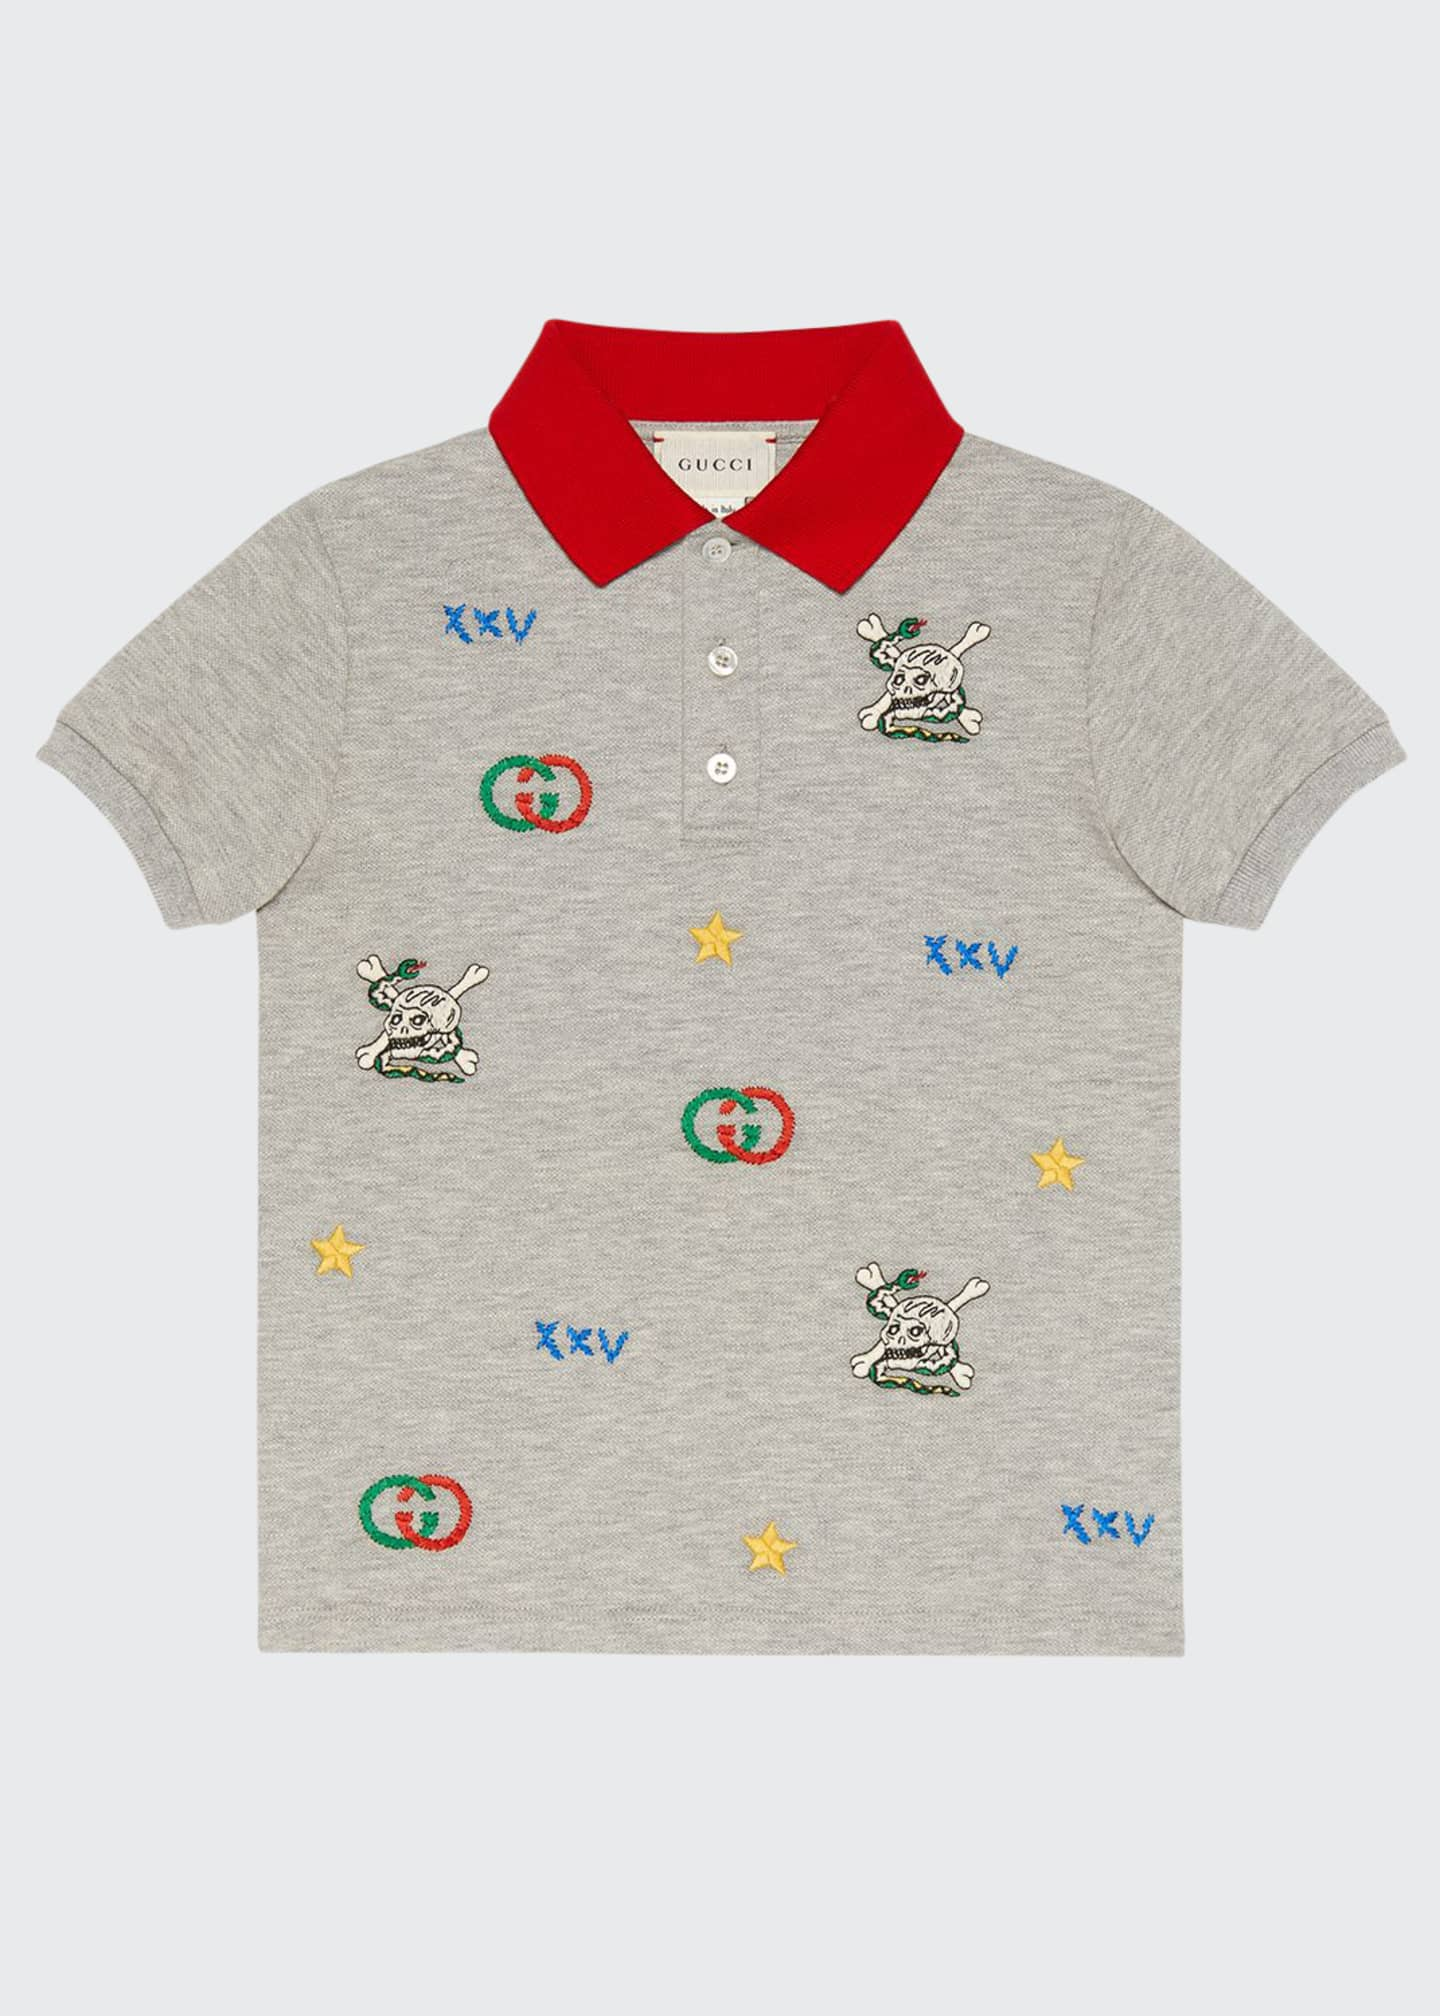 Gucci Heathered Short-Sleeve Polo Shirt w/ Logo Embroidery,